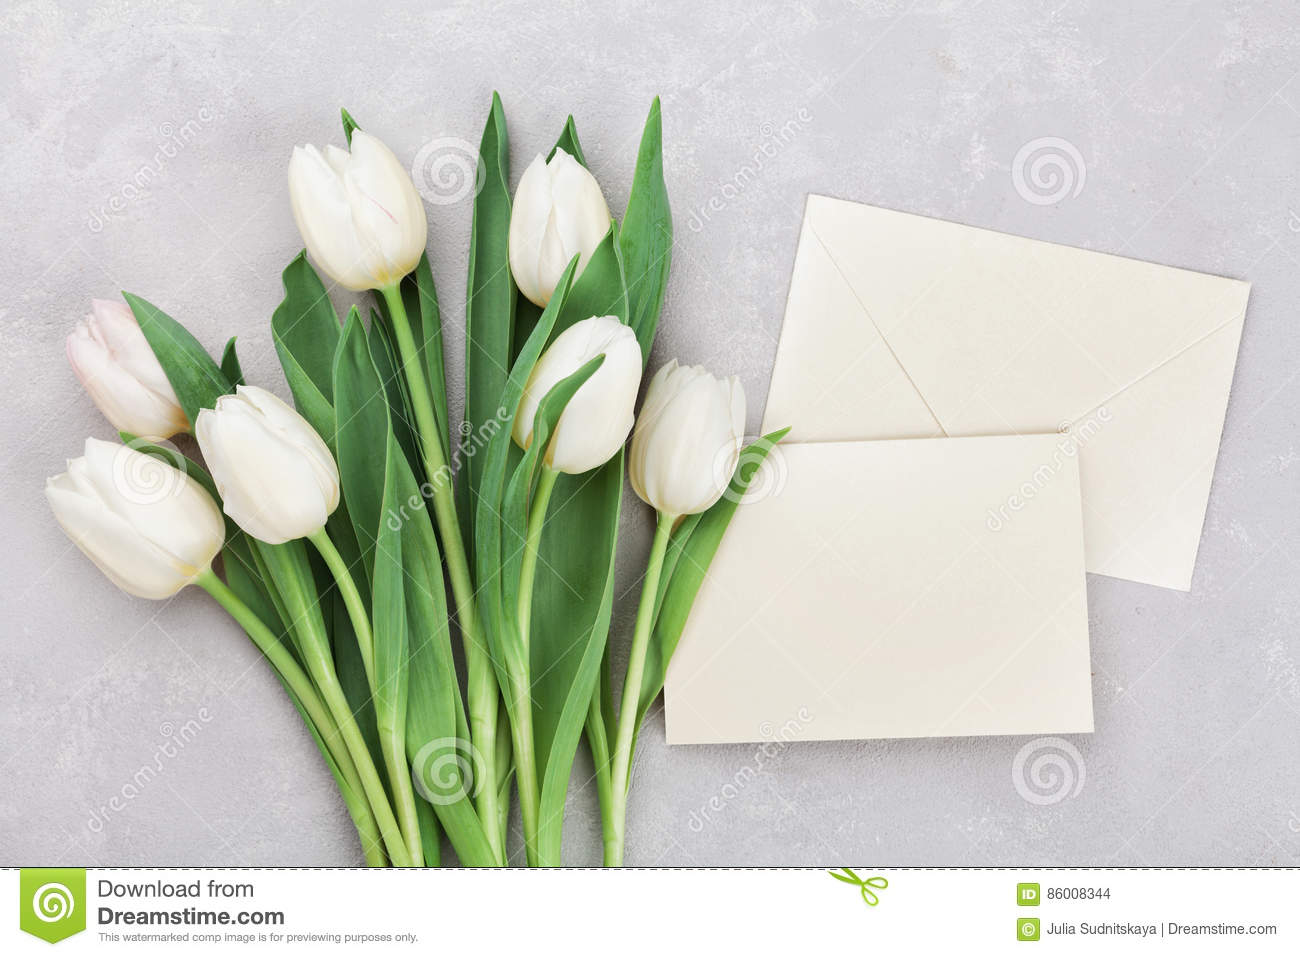 Spring tulip flowers and paper card on gray stone table top view in flat lay style. Greeting for Womens or Mothers Day.